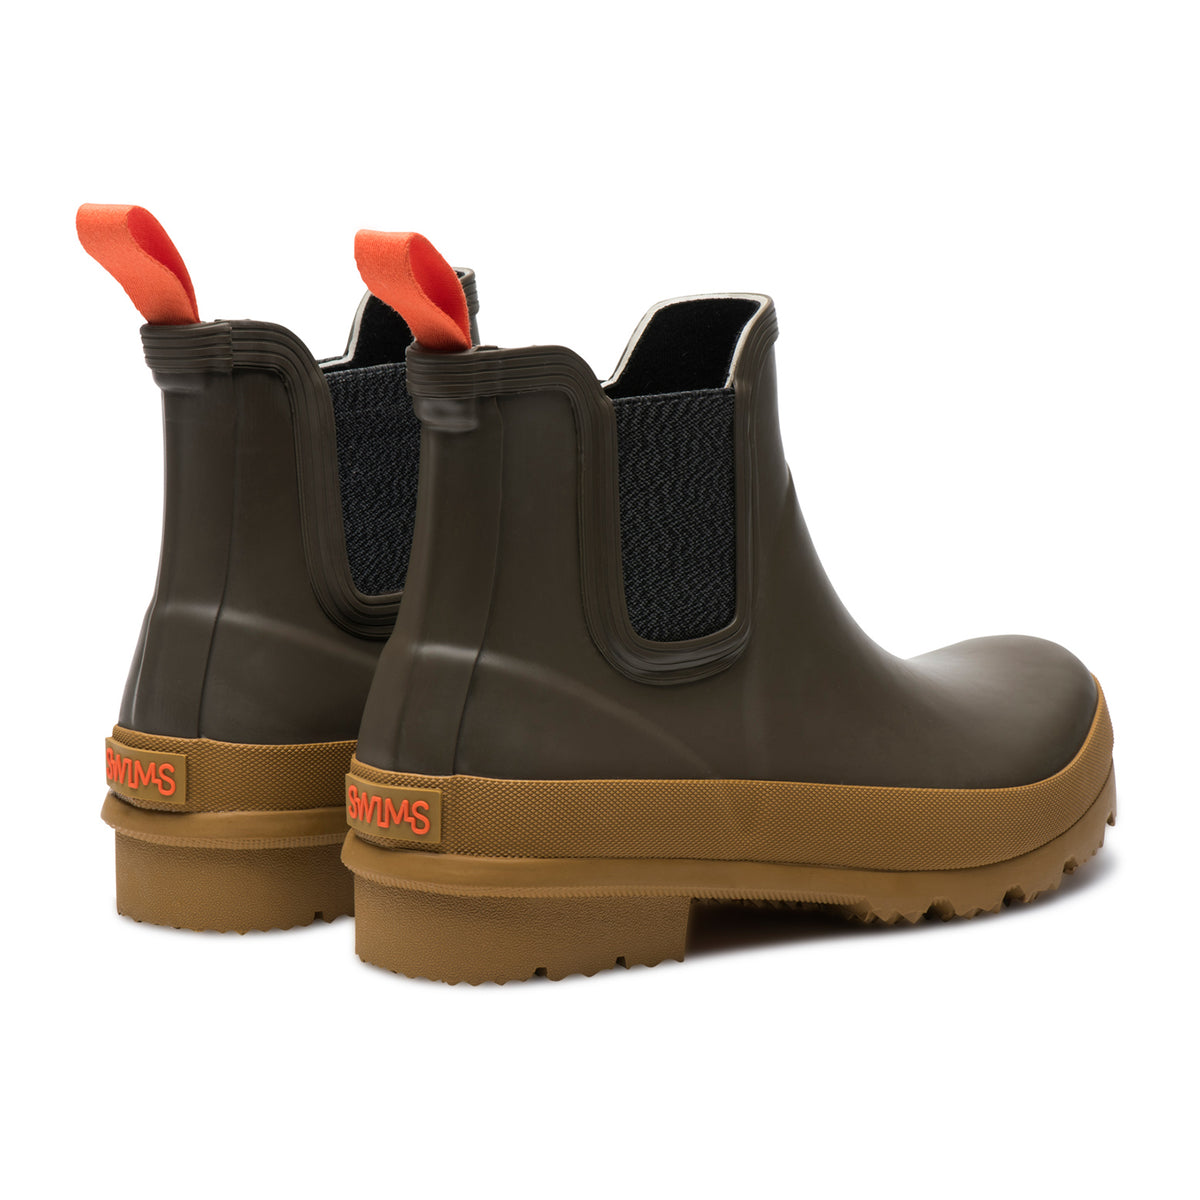 Charlie Rain Boot - background::white,variant::Taupe/Biscuit